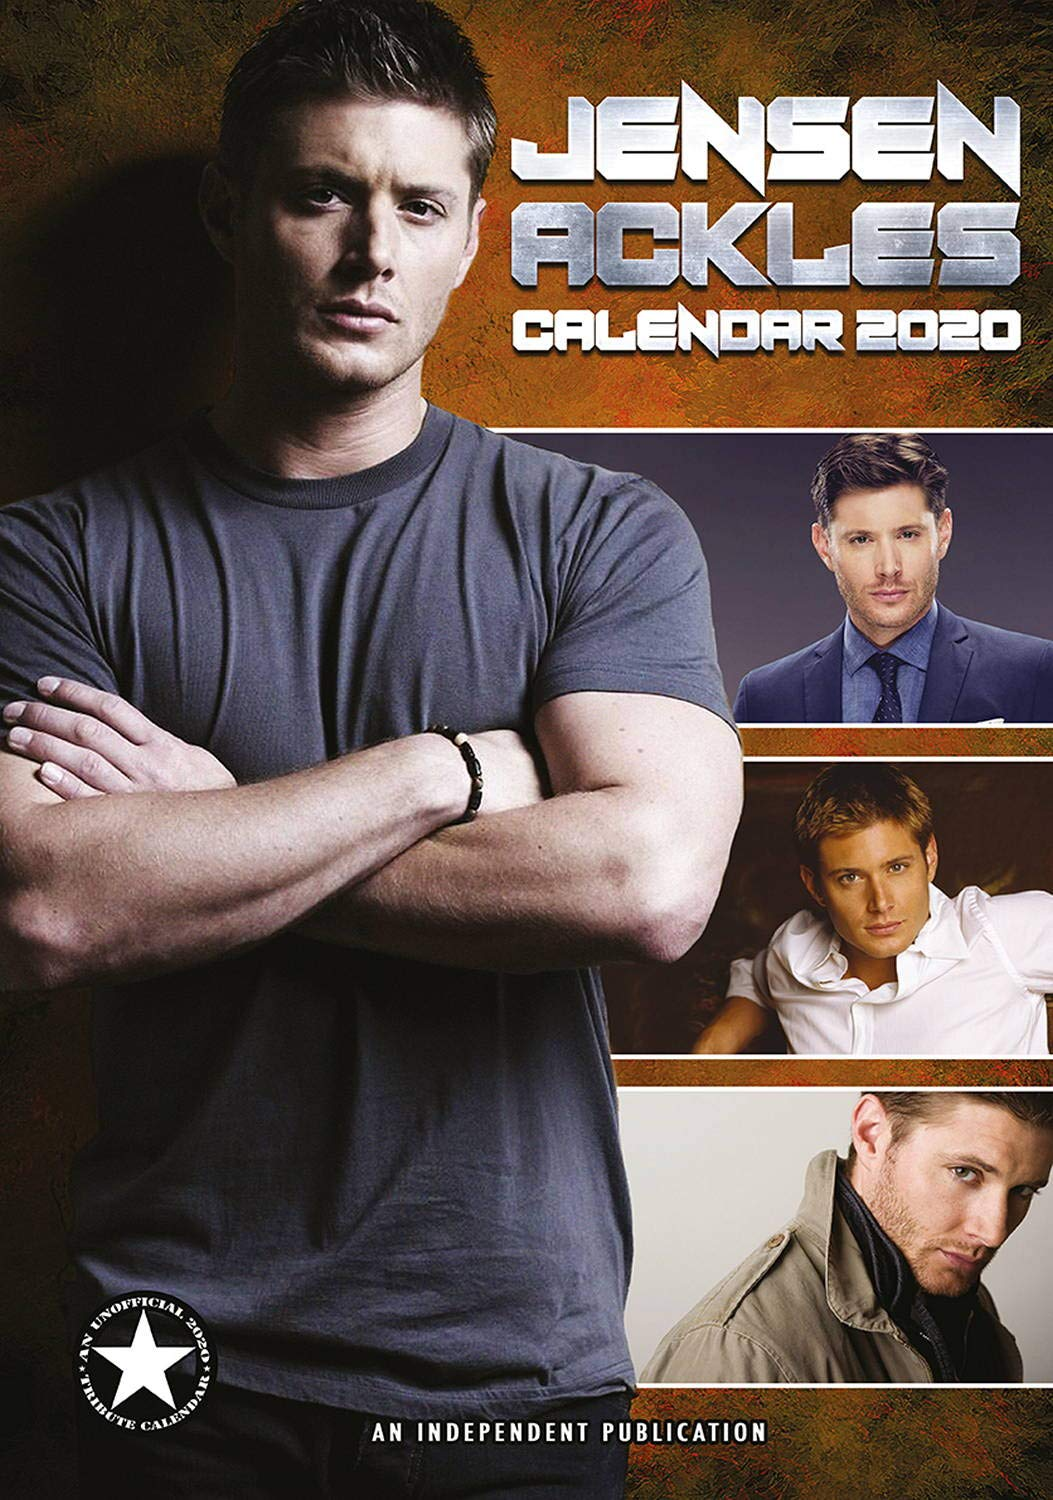 Jensen Ackles Calendar - Calendars 2019 - 2020 Wall Calendars - Supernatural Calendar - Movie Wall Calendar - Sexy Men Calendar - Poster Calendar - 12 Month Calendar by Dream (Multilingual Edition) by Dream Publishing